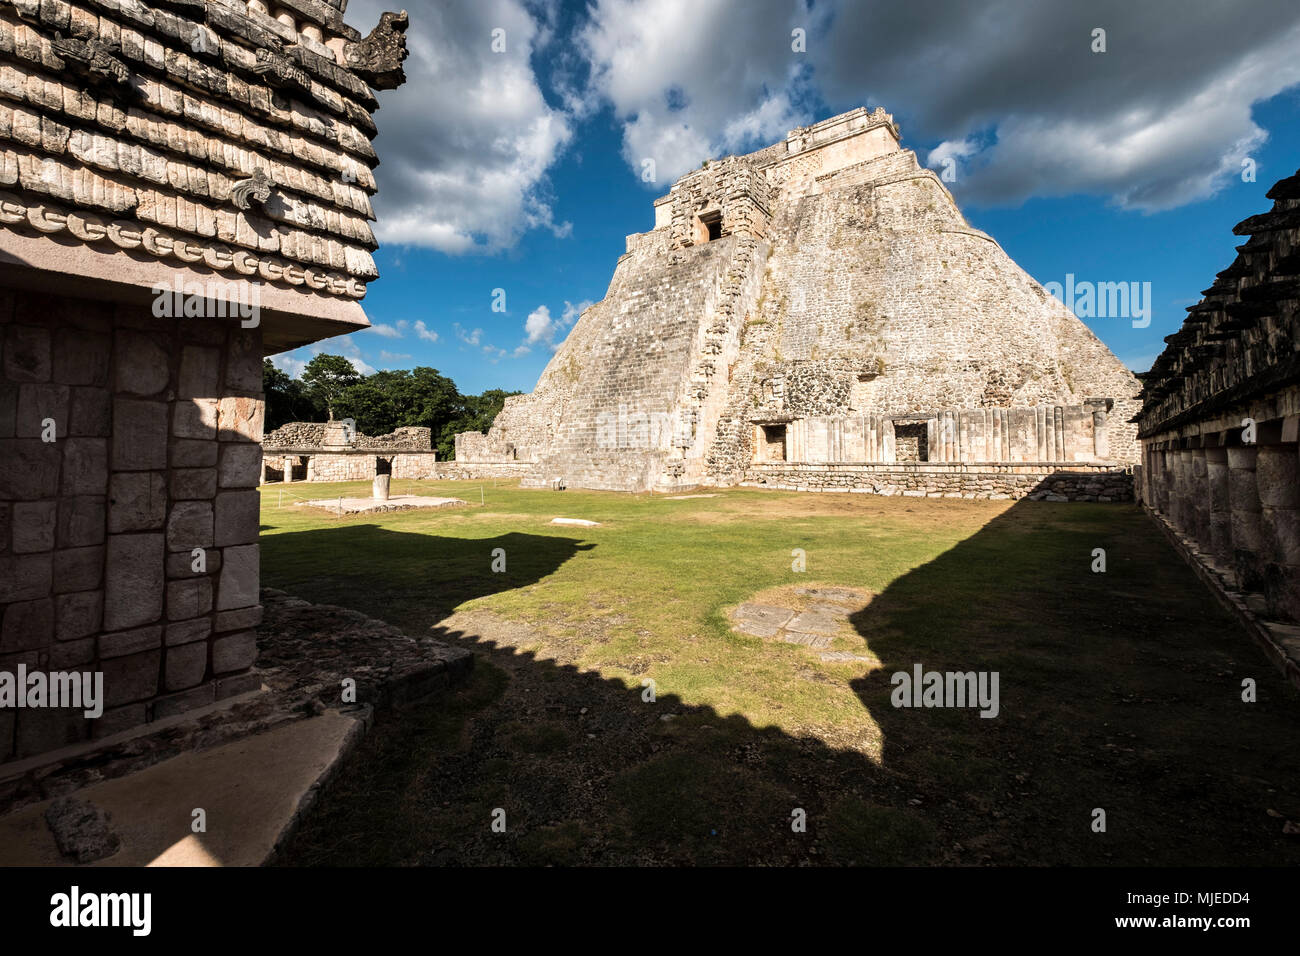 Uxmal, Yucatan, Mexico - October 13, 2017: The Pyramid of the Magician (Pirámide del Mago) towering in the Maya City of Uxmal, Mexico Stock Photo